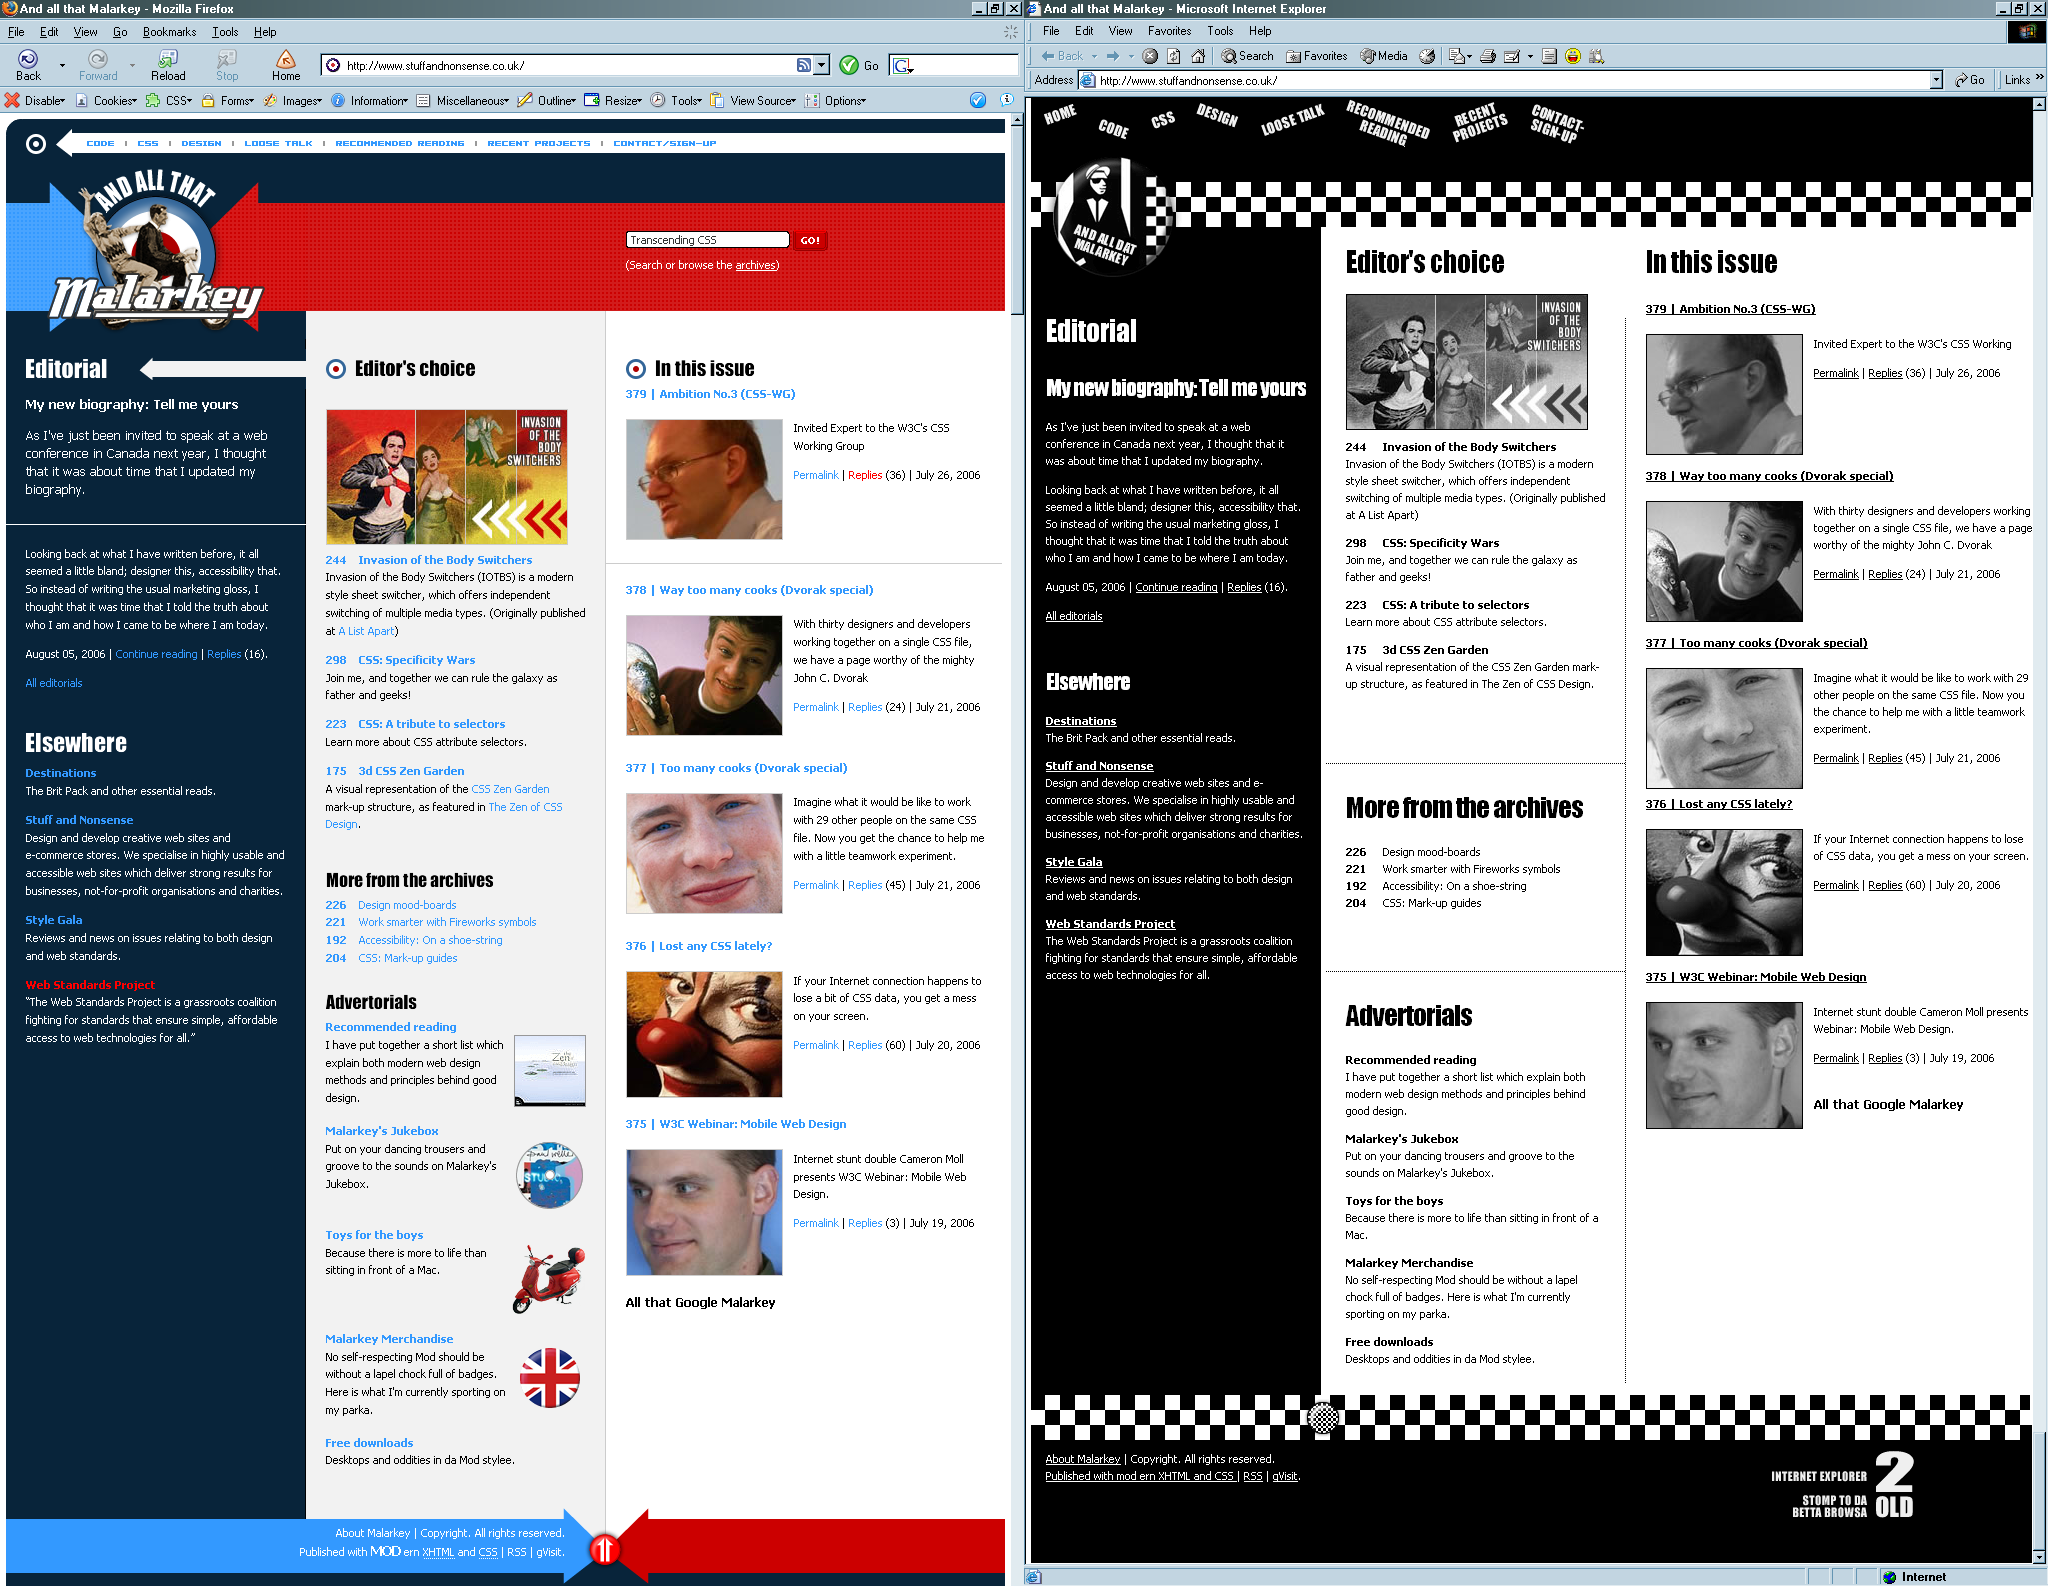 Screen shot of the Stuff & Nonsense website side by side in different browsers, showing the differences in rendering between the two browsers.